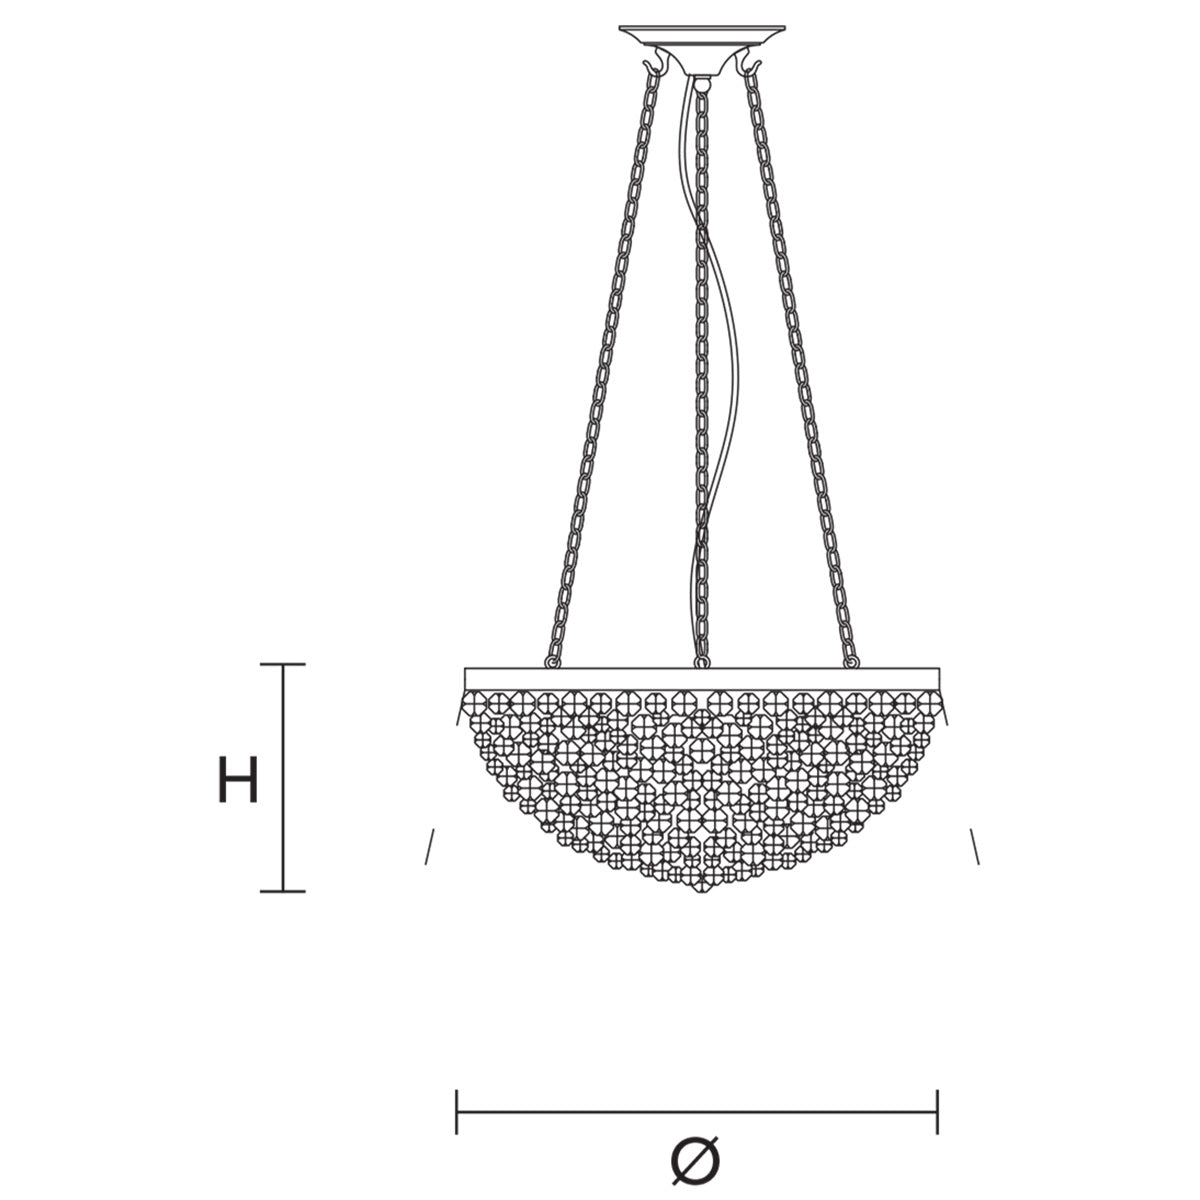 Rosemery 4 Suspension Lamp Specifications